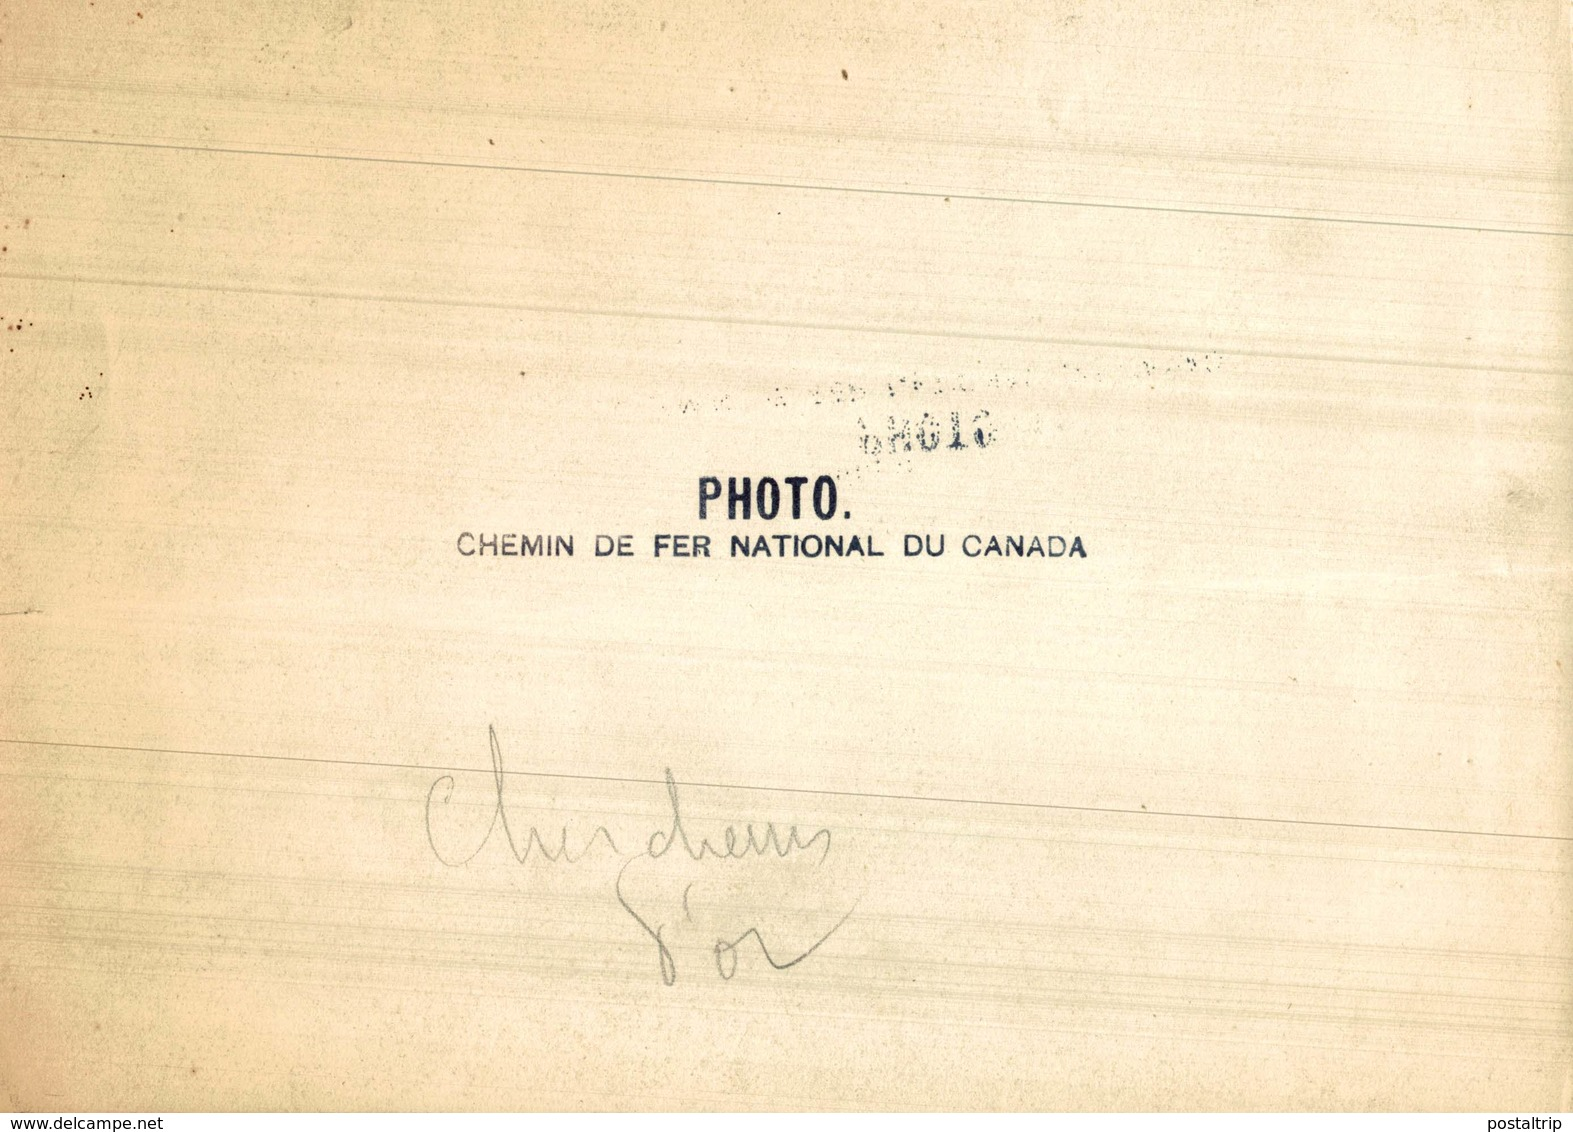 CANADIAN  PHOTO CHEMIN DE FER NATIONAL DU CANADA PACIFIC RAILWAY CHIENS DOGS  Canada   Fonds Victor FORBIN (1864-1947) - Lugares